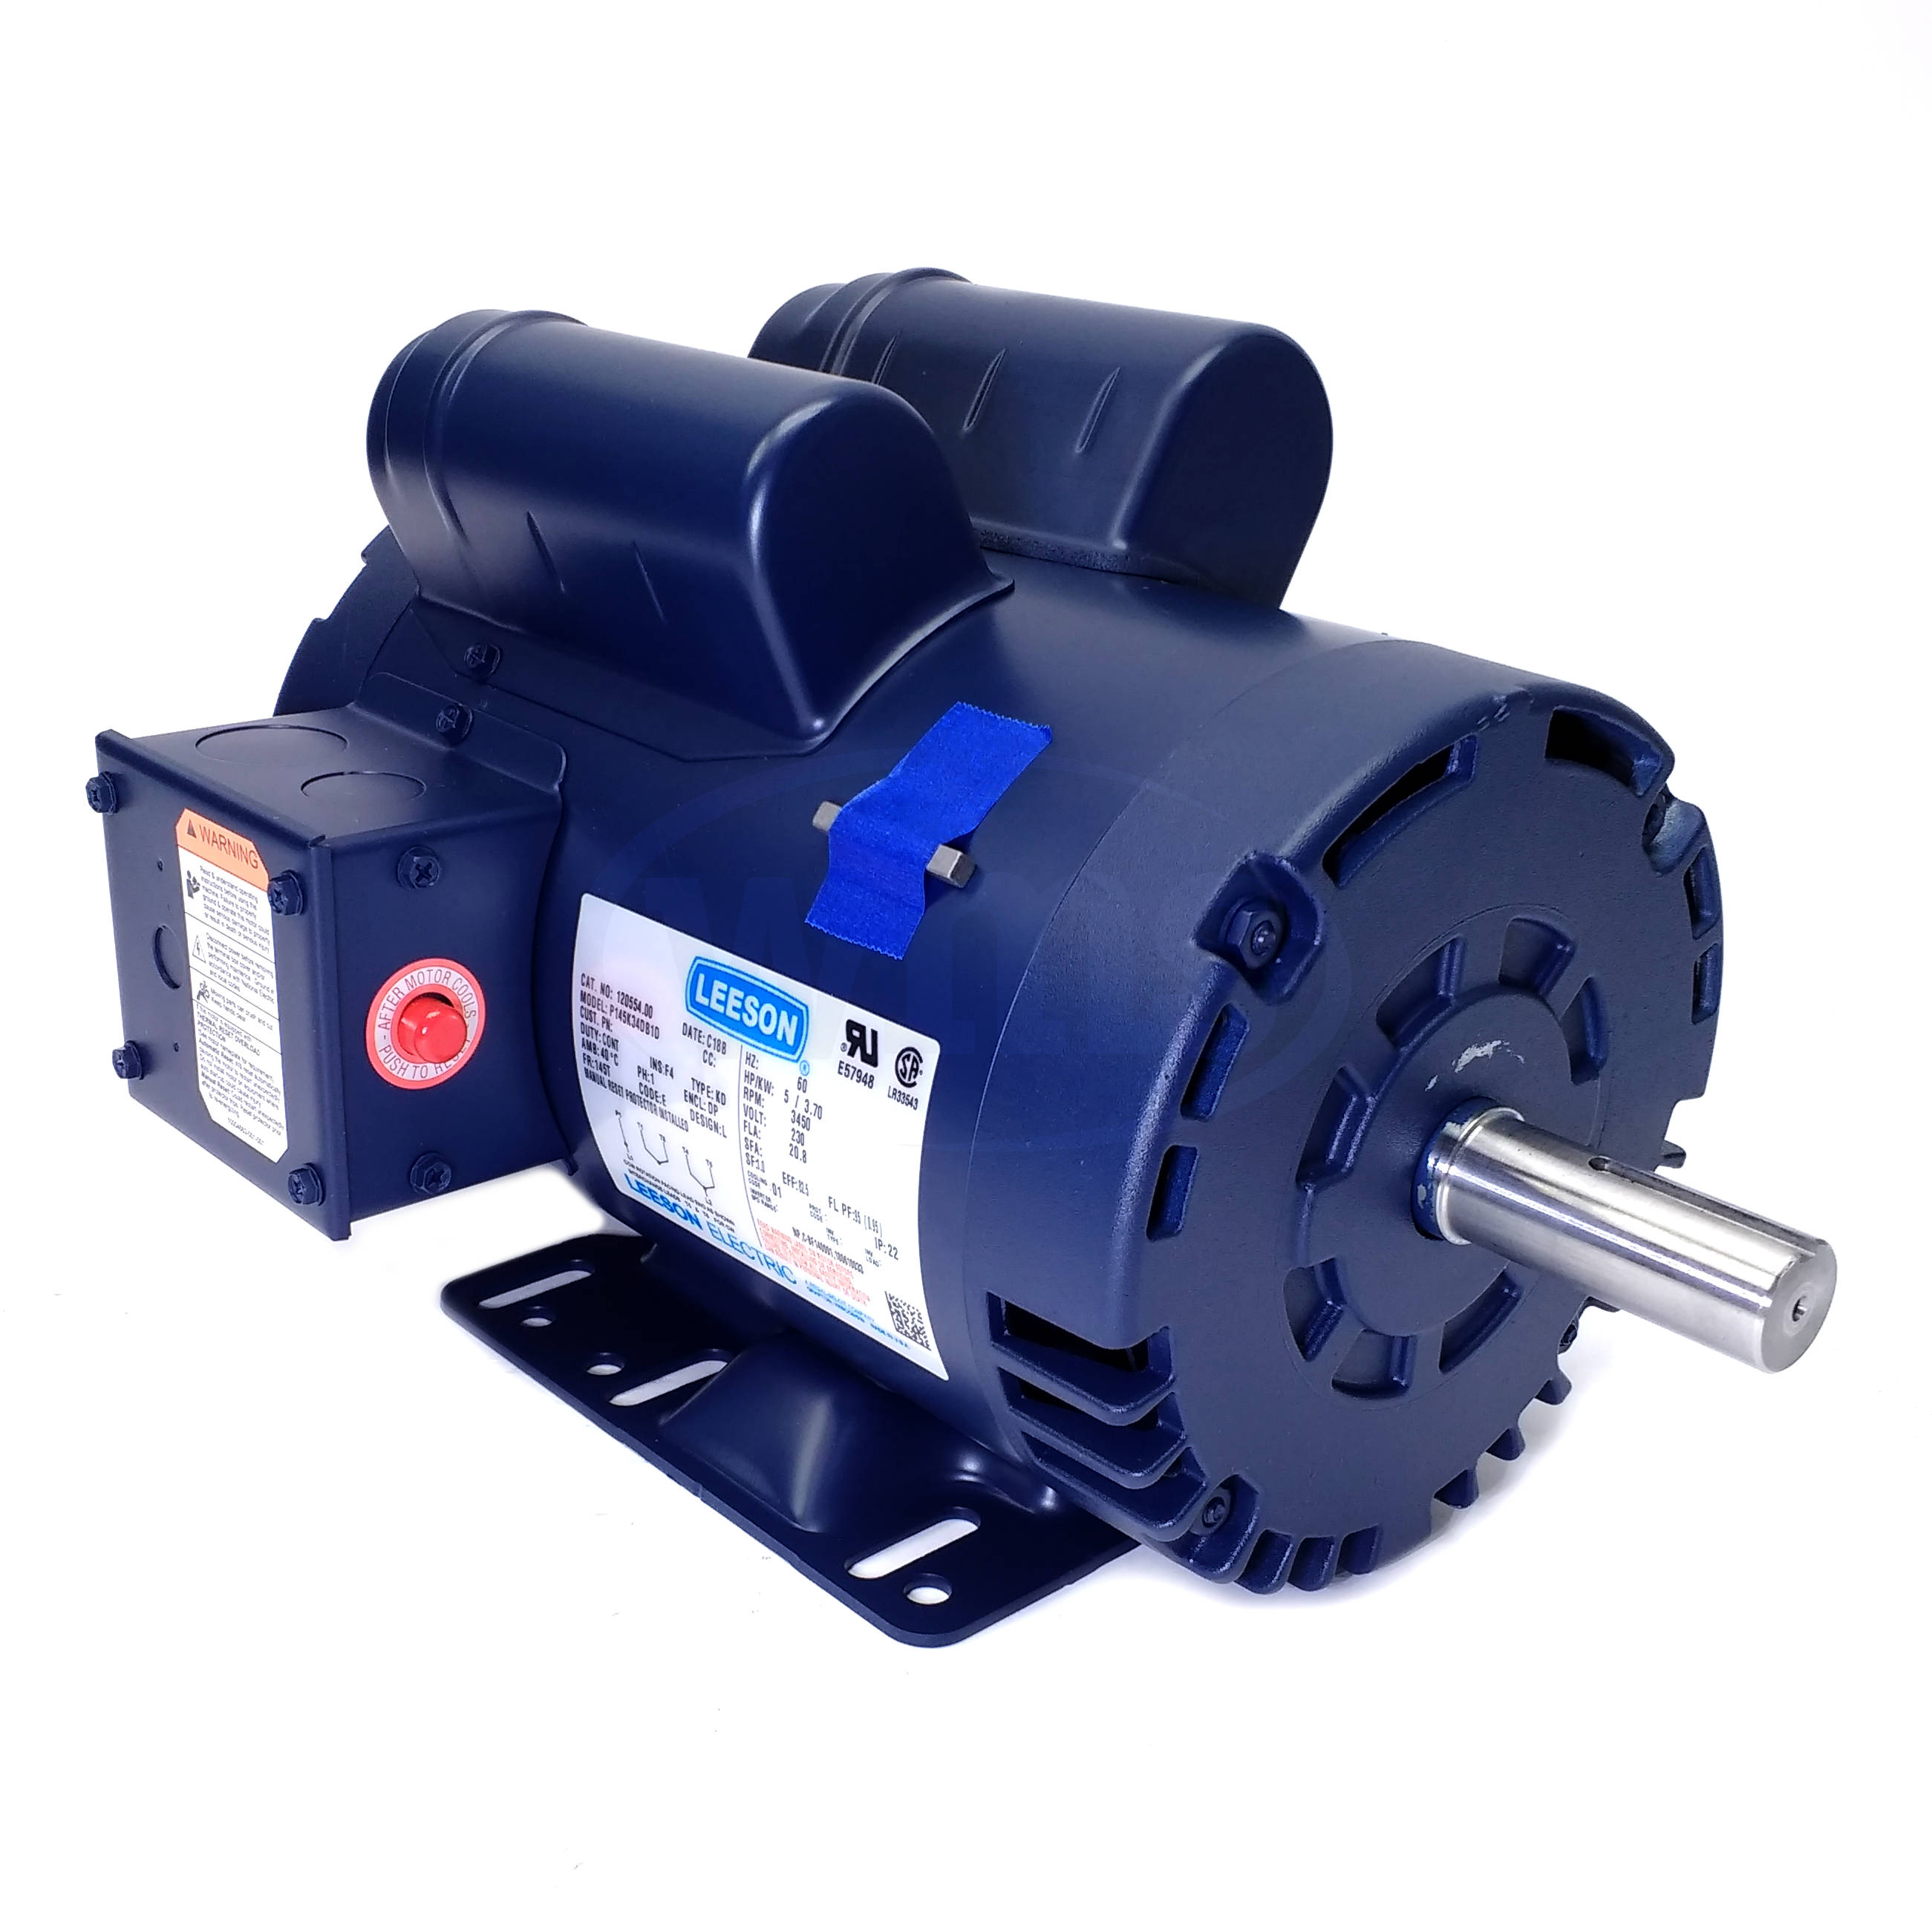 hight resolution of 120554 00 leeson 5hp electric motor electric motors leeson motor wiring help